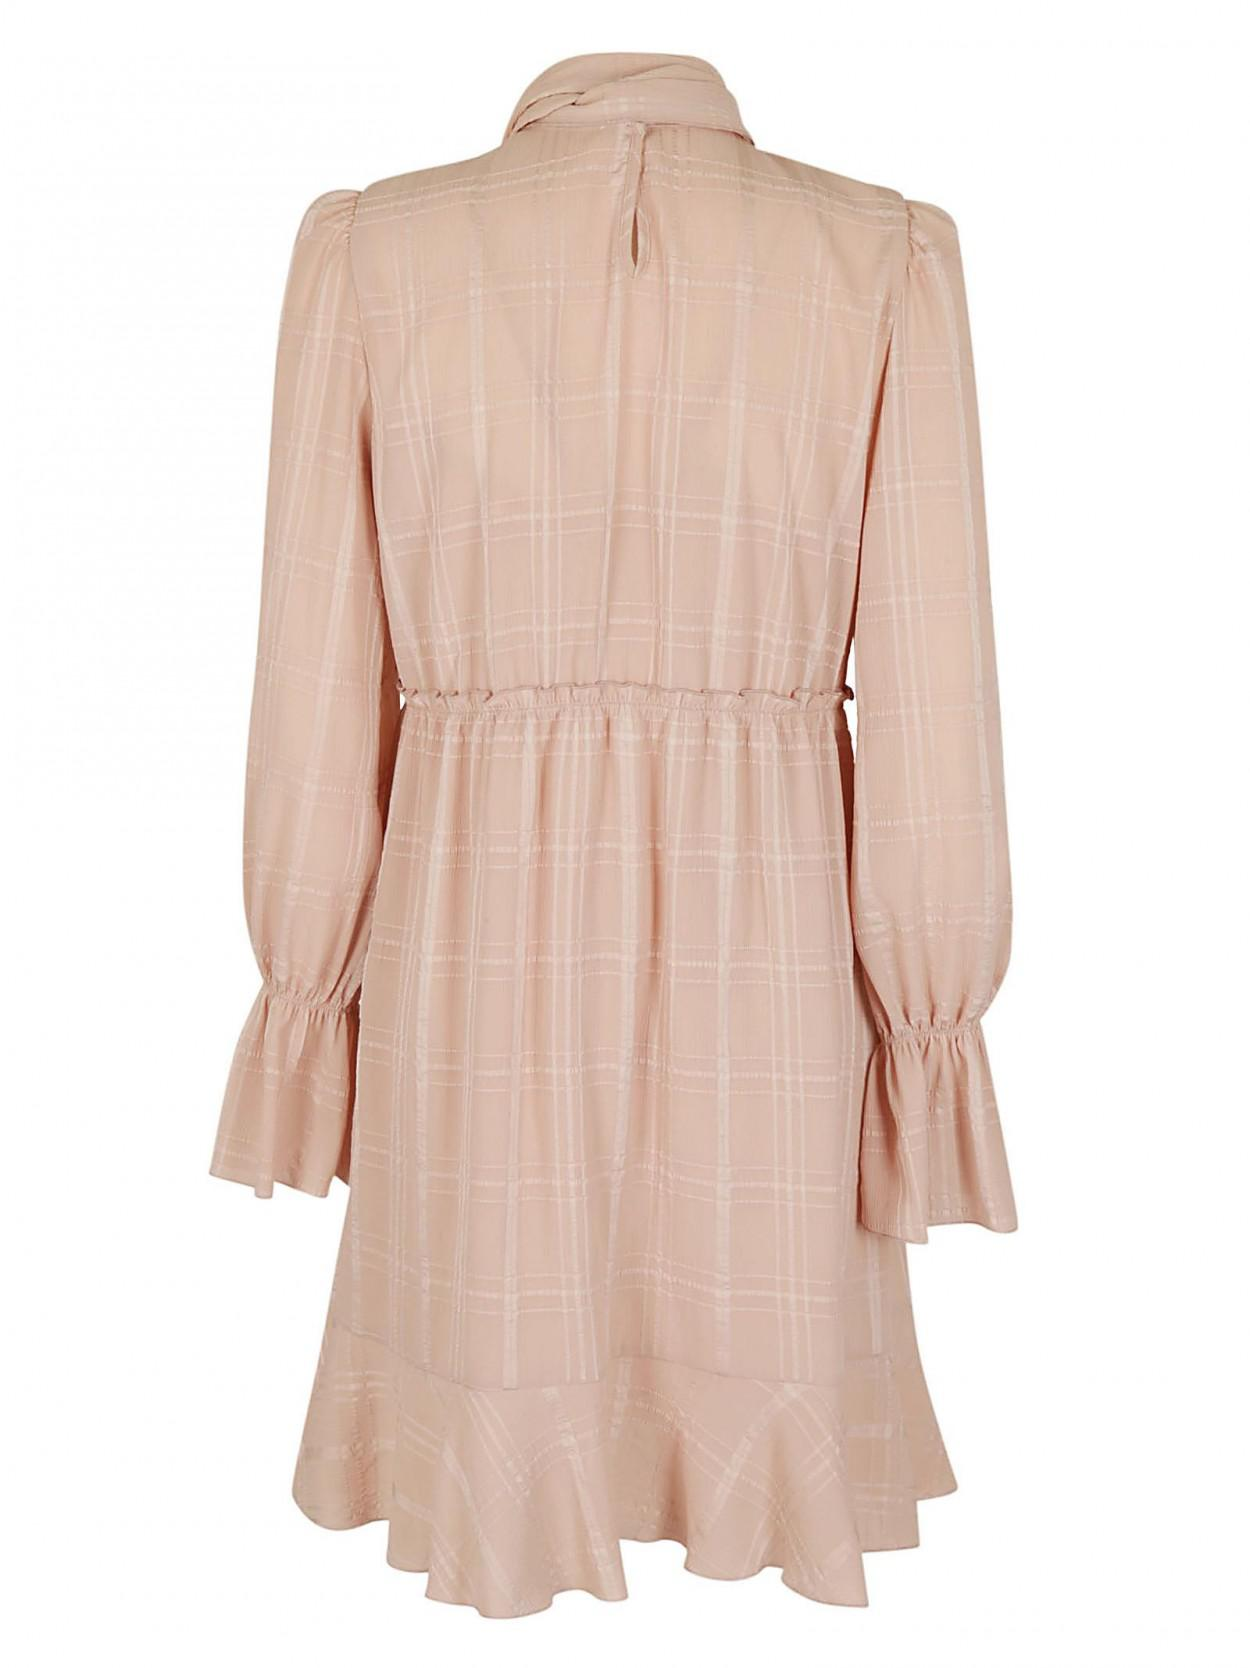 340e22d149ba Lyst - See By Chloé SEE BY CHLOE  Abito corto rosa in Pink